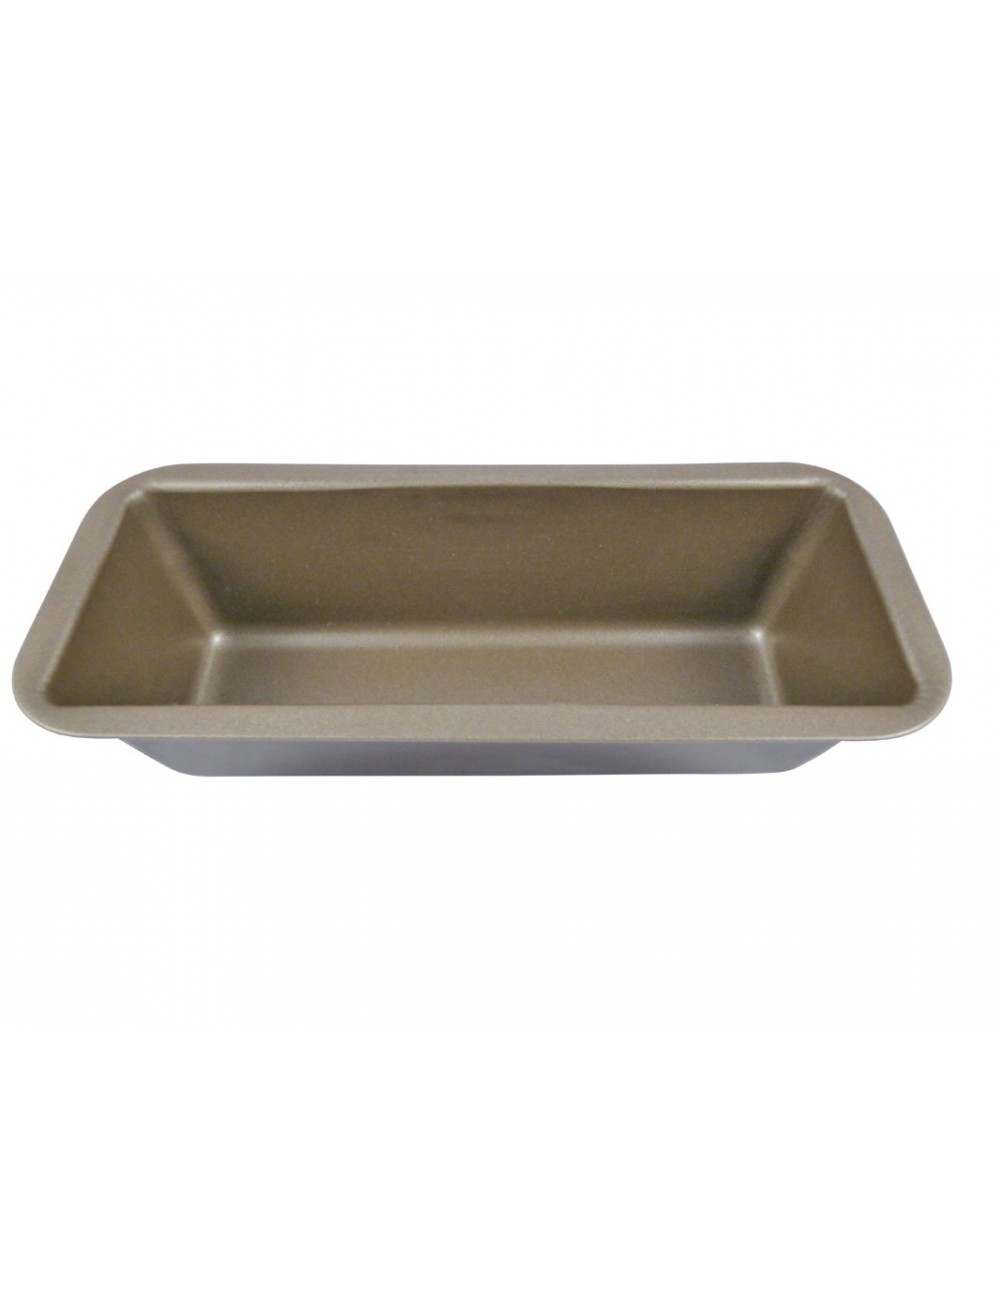 NON-STICK EMBOSSED CAKE TIN